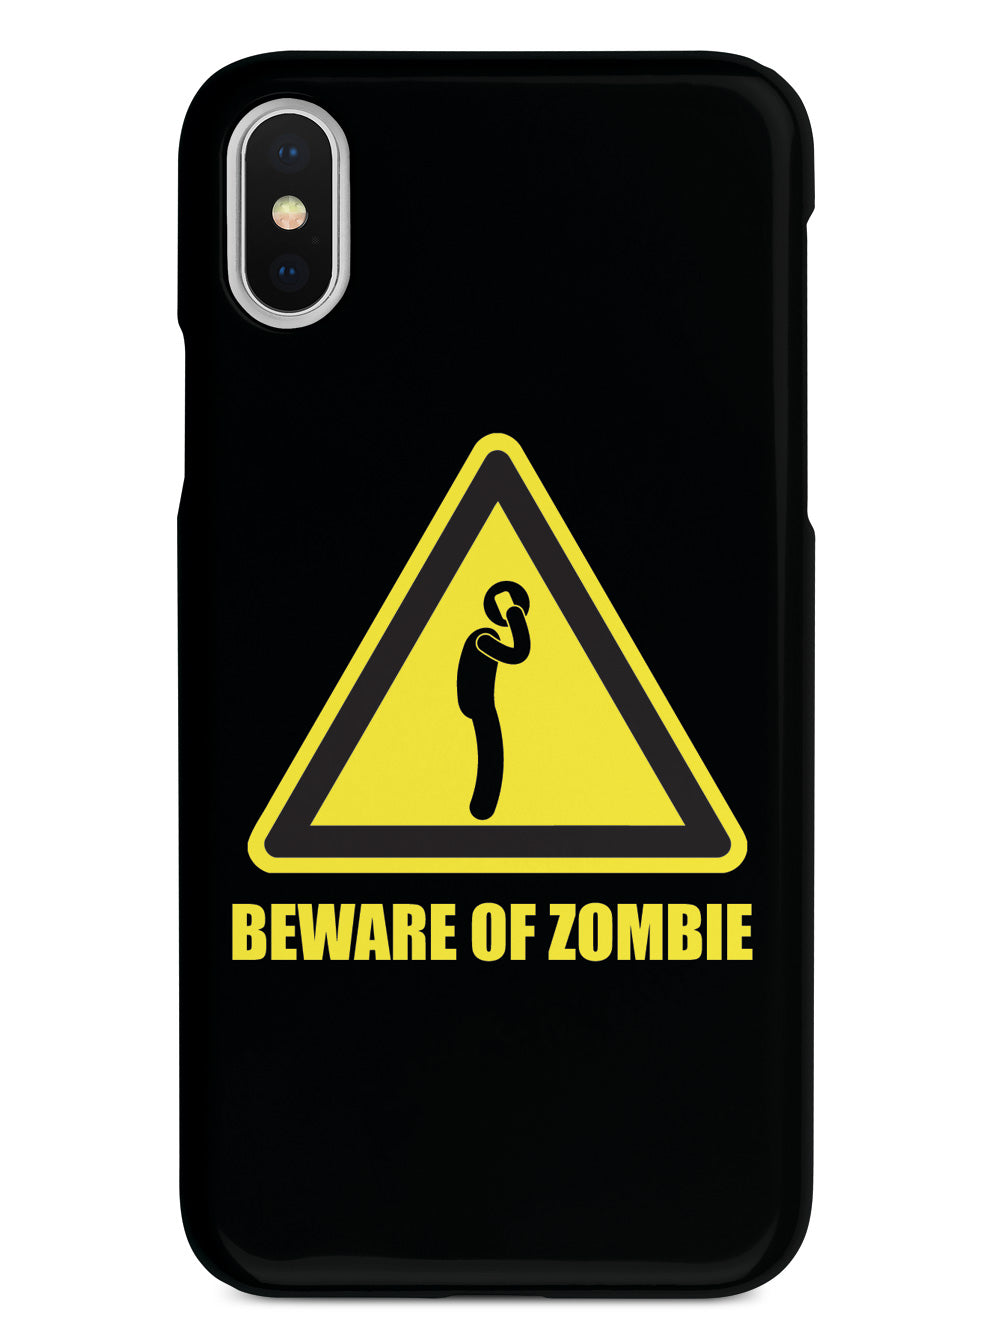 Cellphone Zombie - Black Case